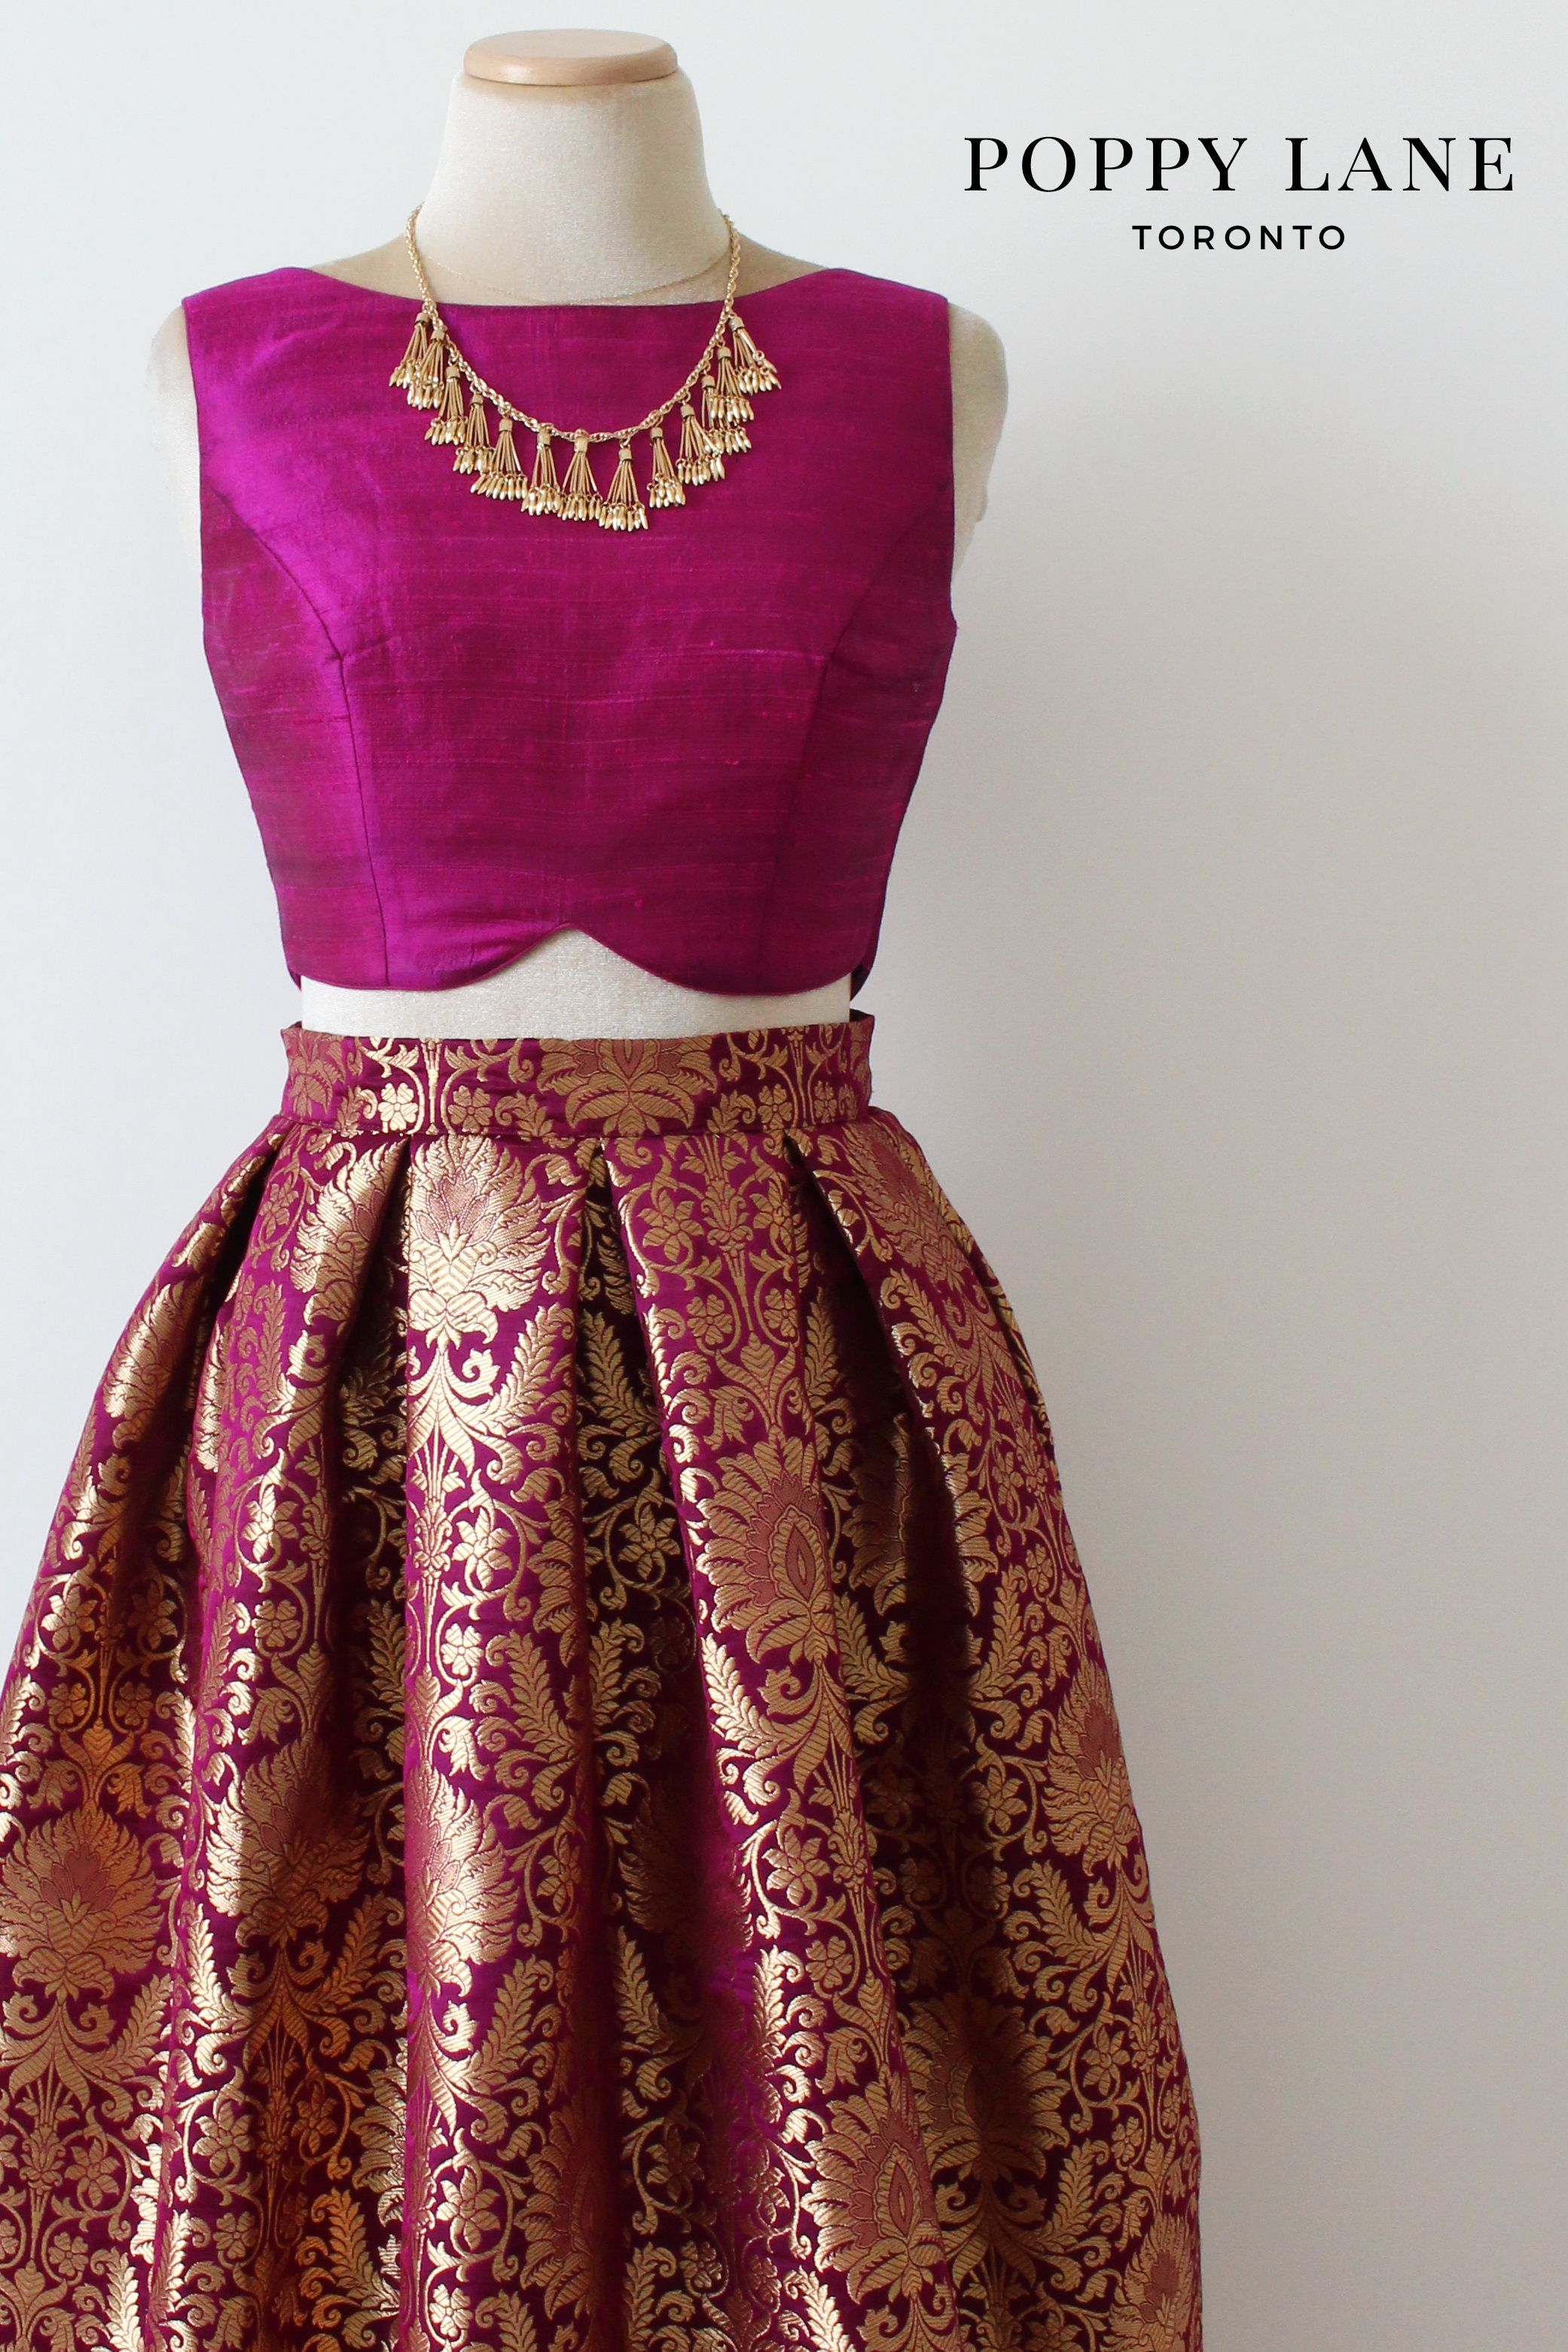 Royal Brocade Purple Skirts shop now at poppylane.ca Looking for similar kind of brocade click on below links. https://www.etsy.com/shop/Indianlacesandfabric?section_id=16883040&ref=shopsection_leftnav_2&view_type=gallery